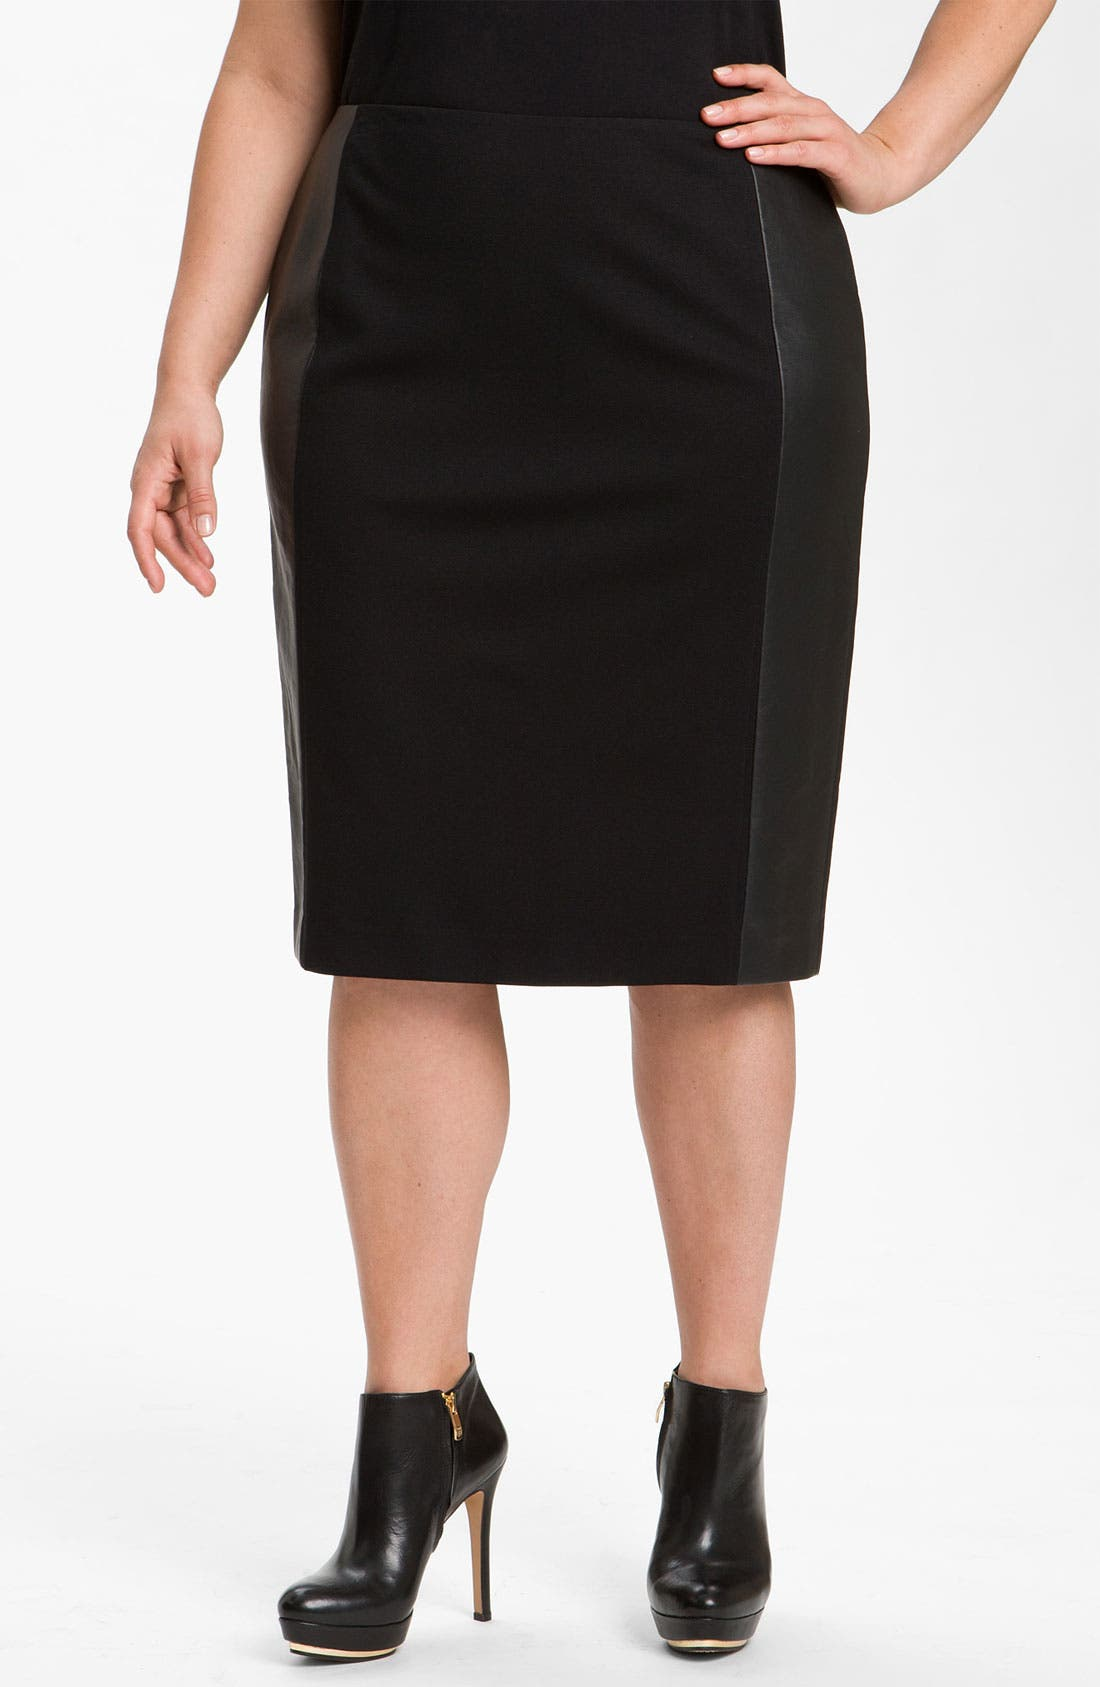 Alternate Image 1 Selected - Sejour Ponte Knit & Faux Leather Skirt (Plus)